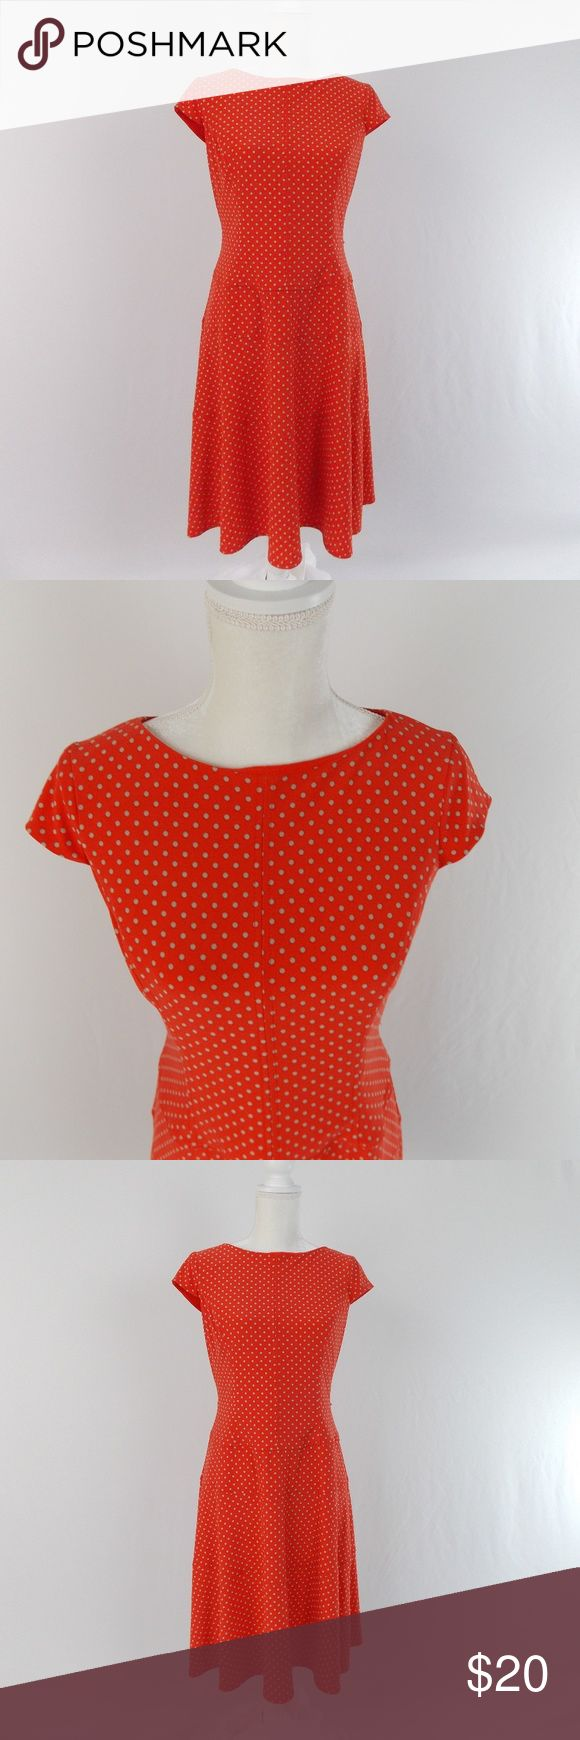 Anne Klein Polka Dot Dress Work Casual Party Sz8 Anne Klein Polka Dot Dress Work Casual Party Sz8   95% Polyester 5% Elastane  What we love about this dress:  Fun work dress or night out on sipping on wine with your favorite BFF.  Any occasion dress! Anne Klein Dresses